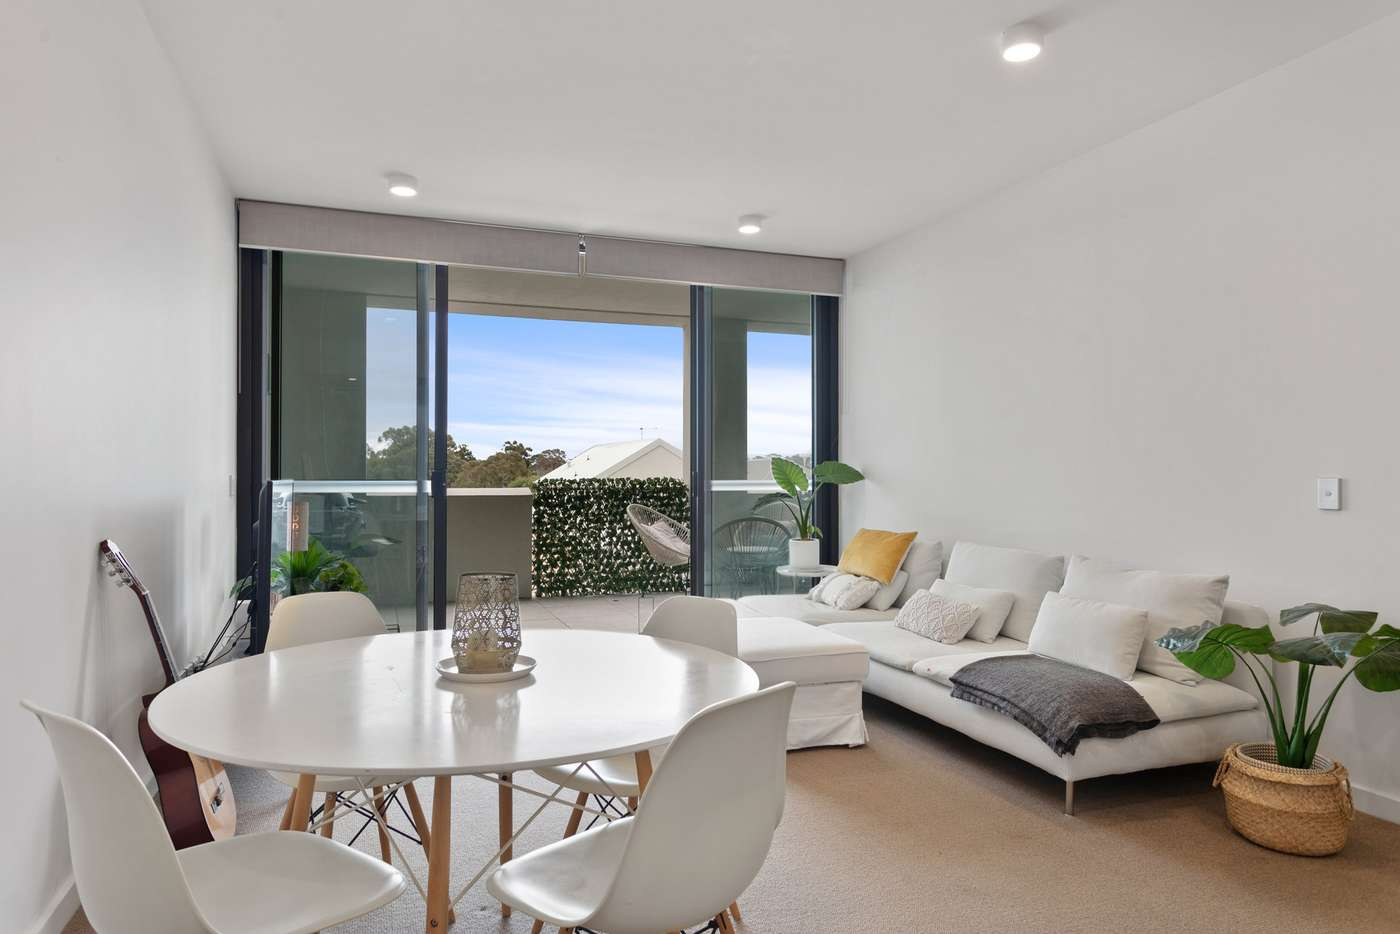 Main view of Homely apartment listing, 51/7 Davies Road, Claremont WA 6010